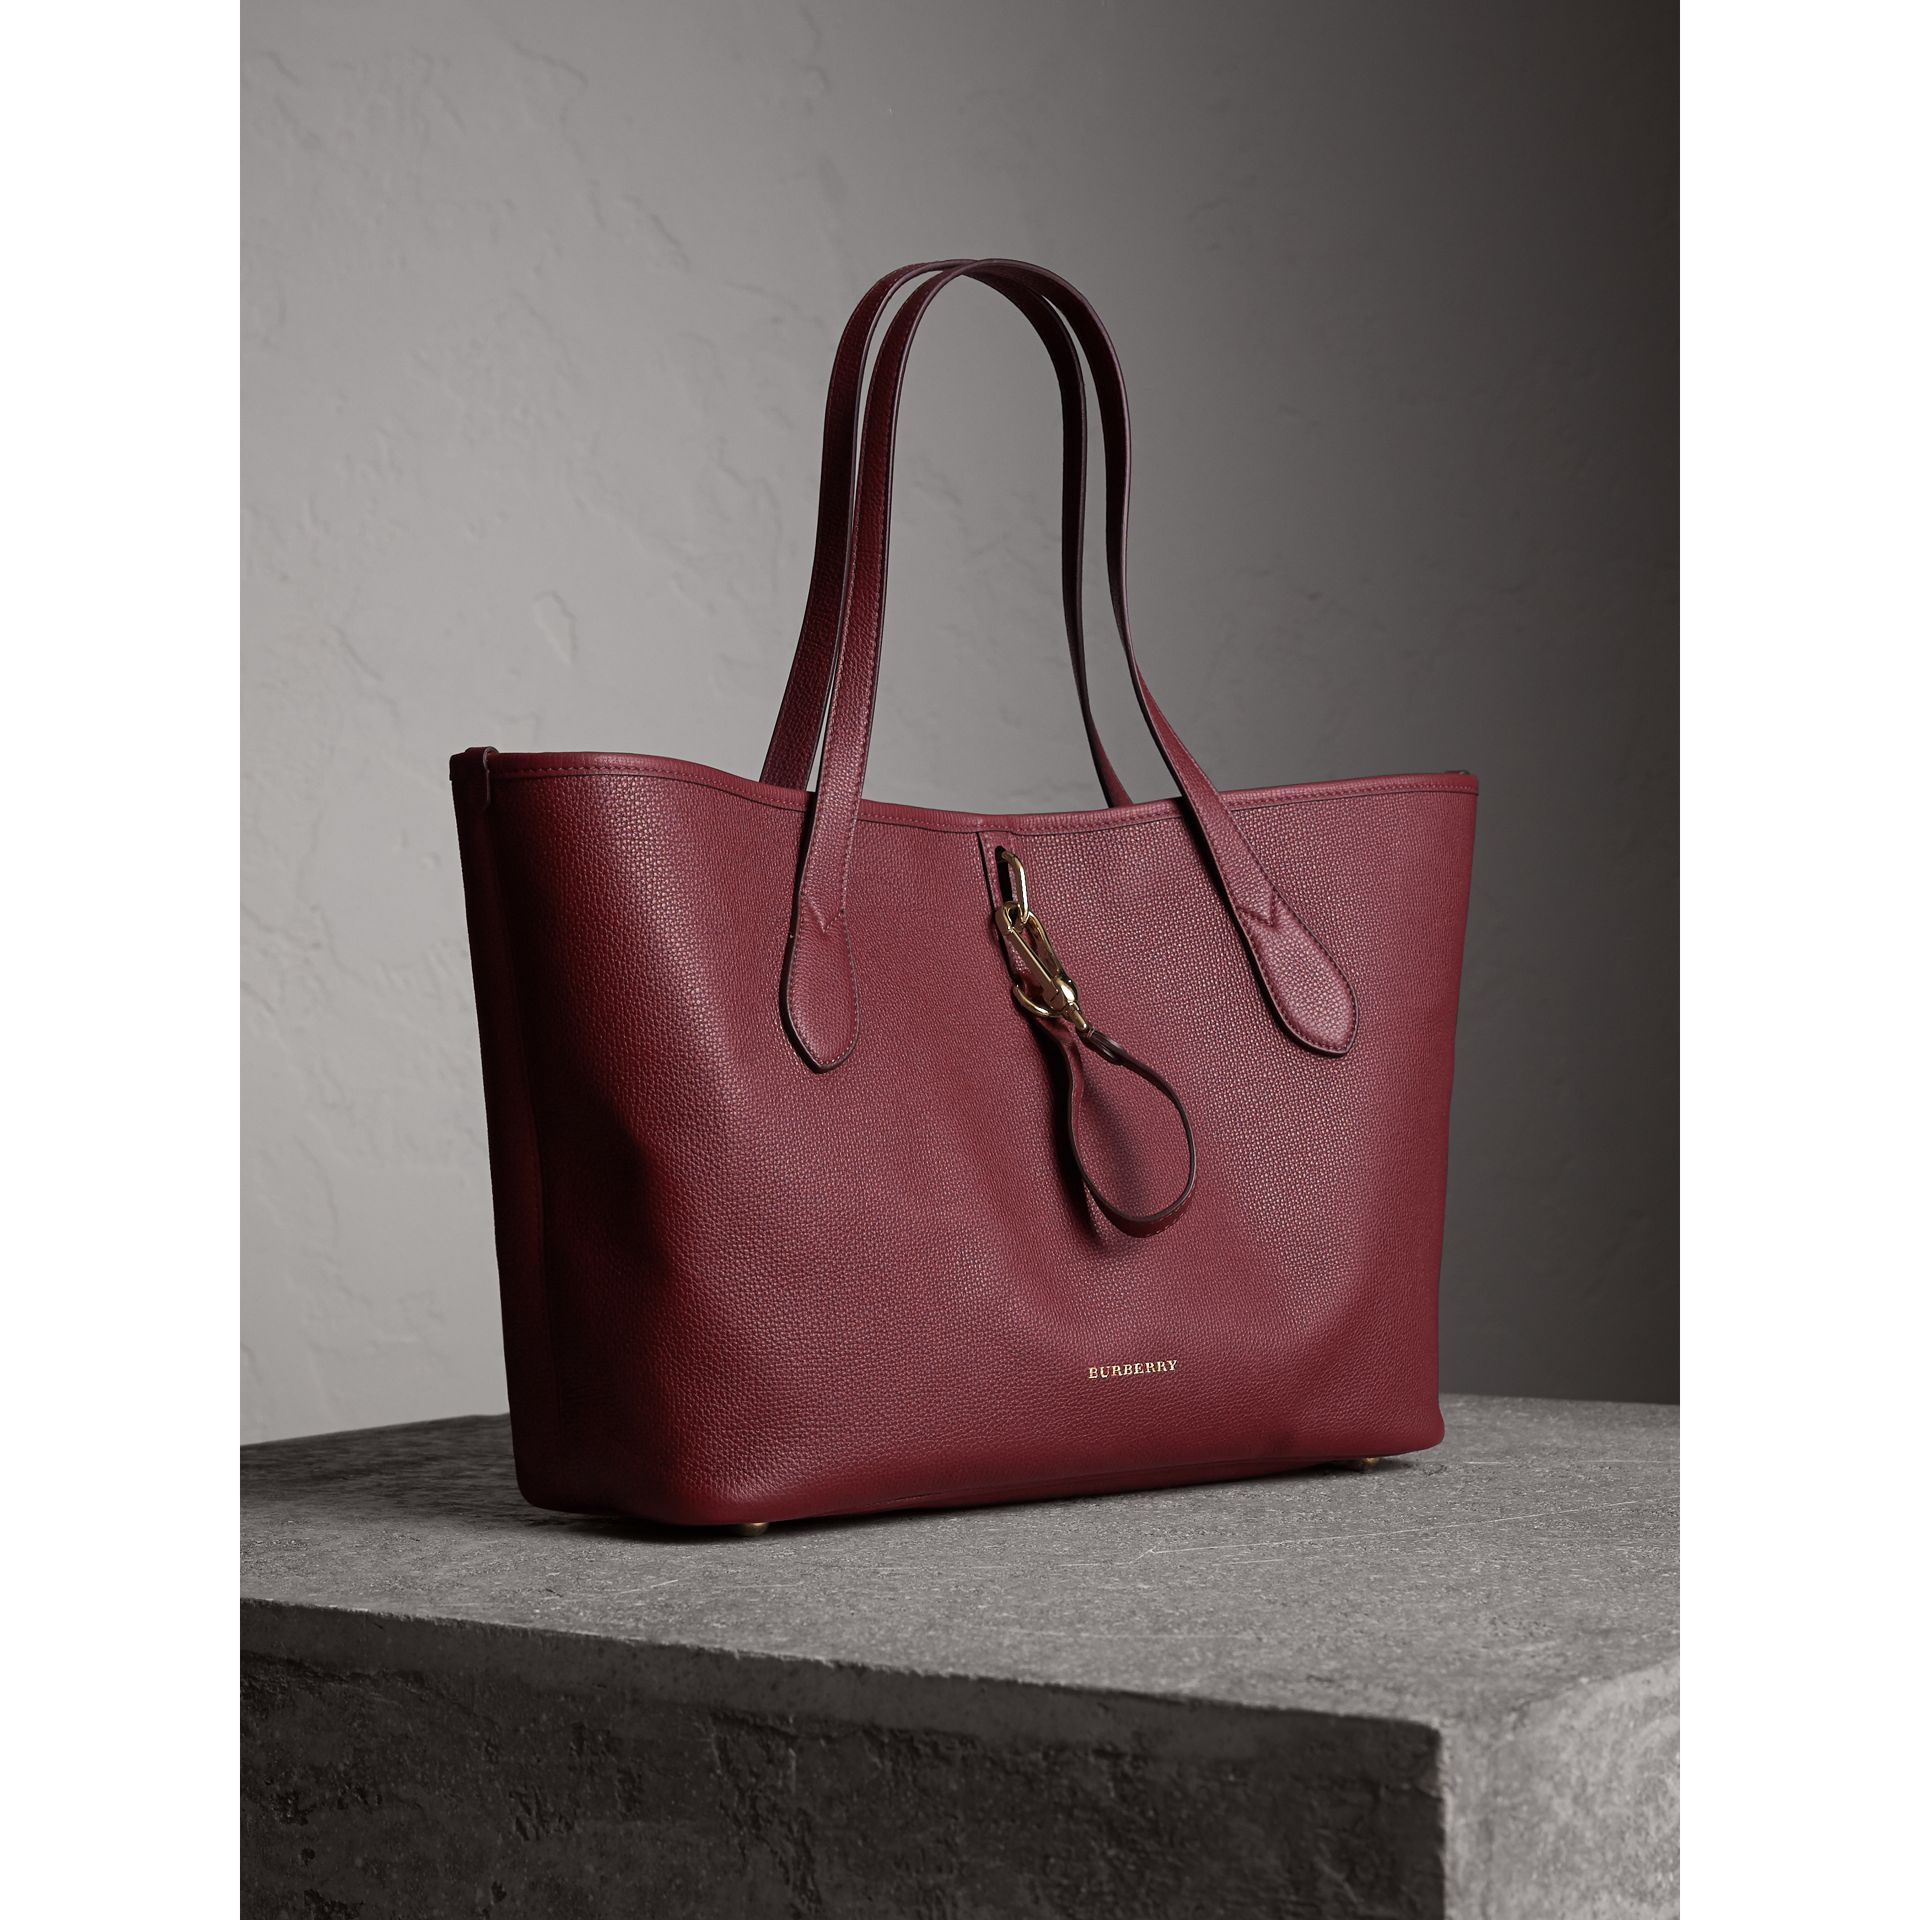 Medium Grainy Leather Tote Bag in Mahogany Red - Women | Burberry United States - gallery image 6